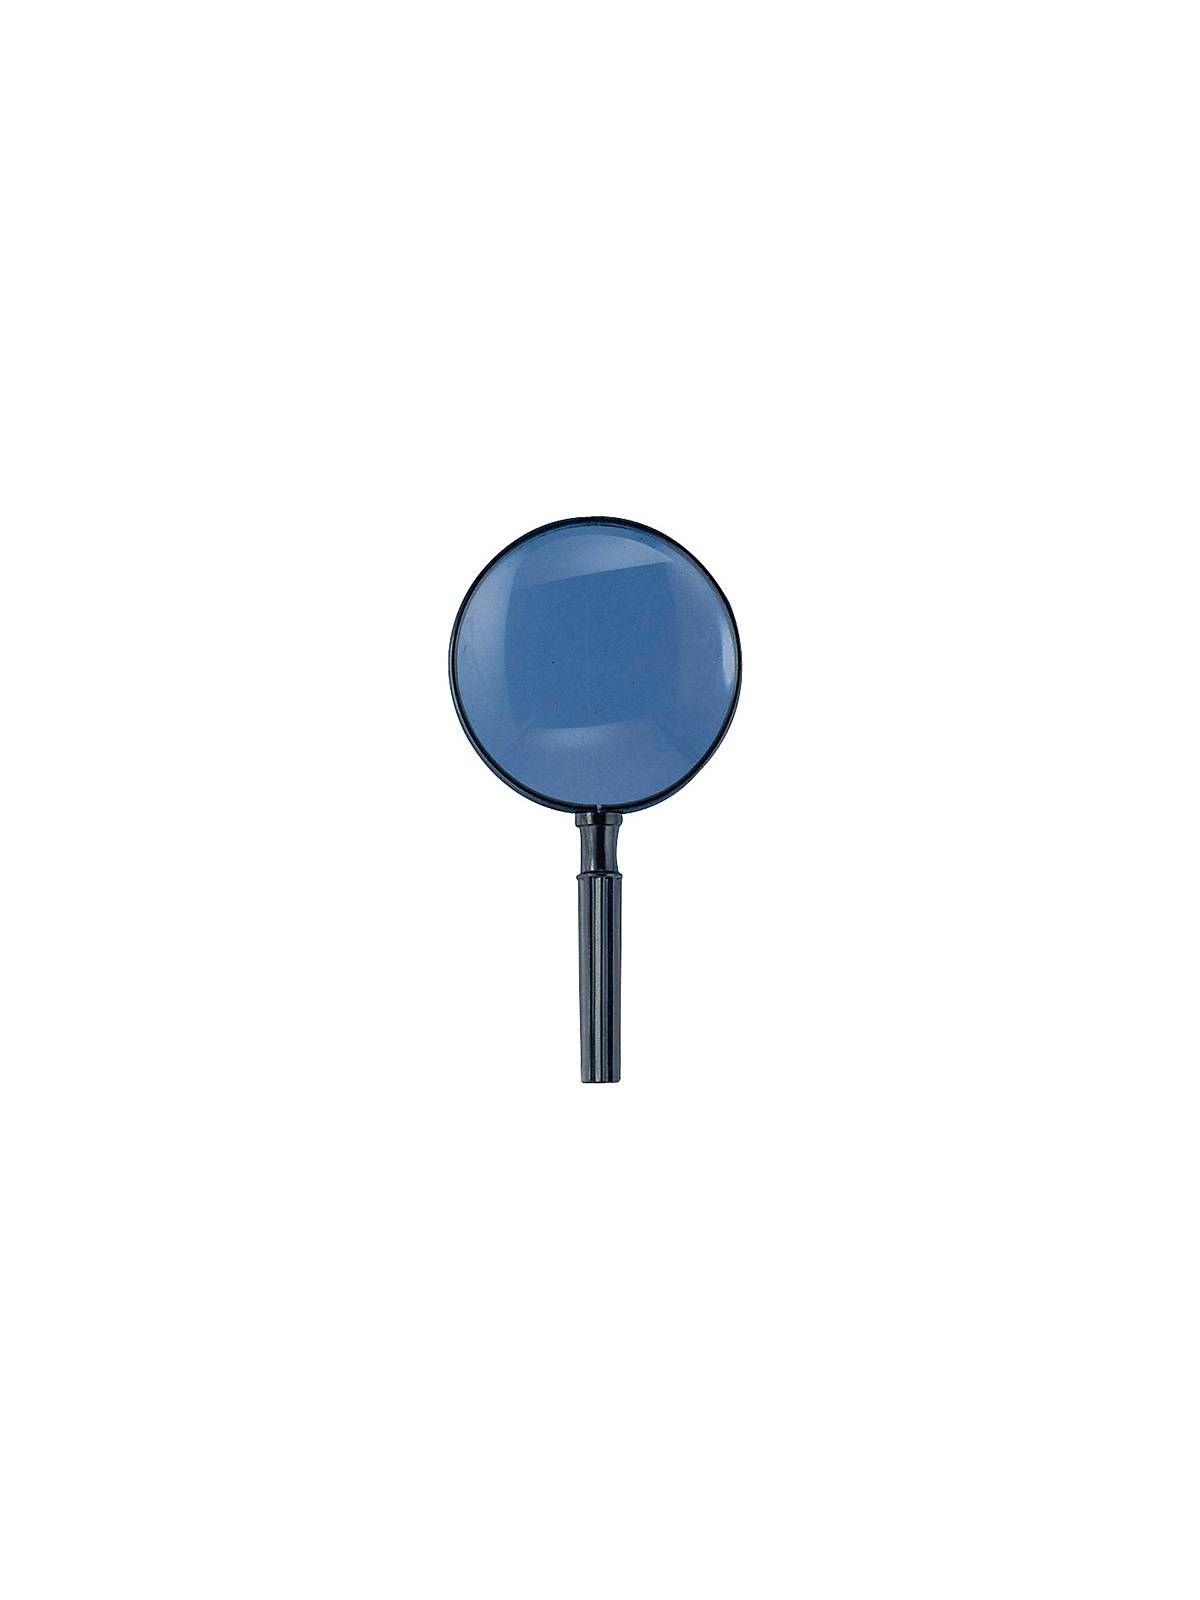 jumbo magnifying glass halloween police accessories despicable